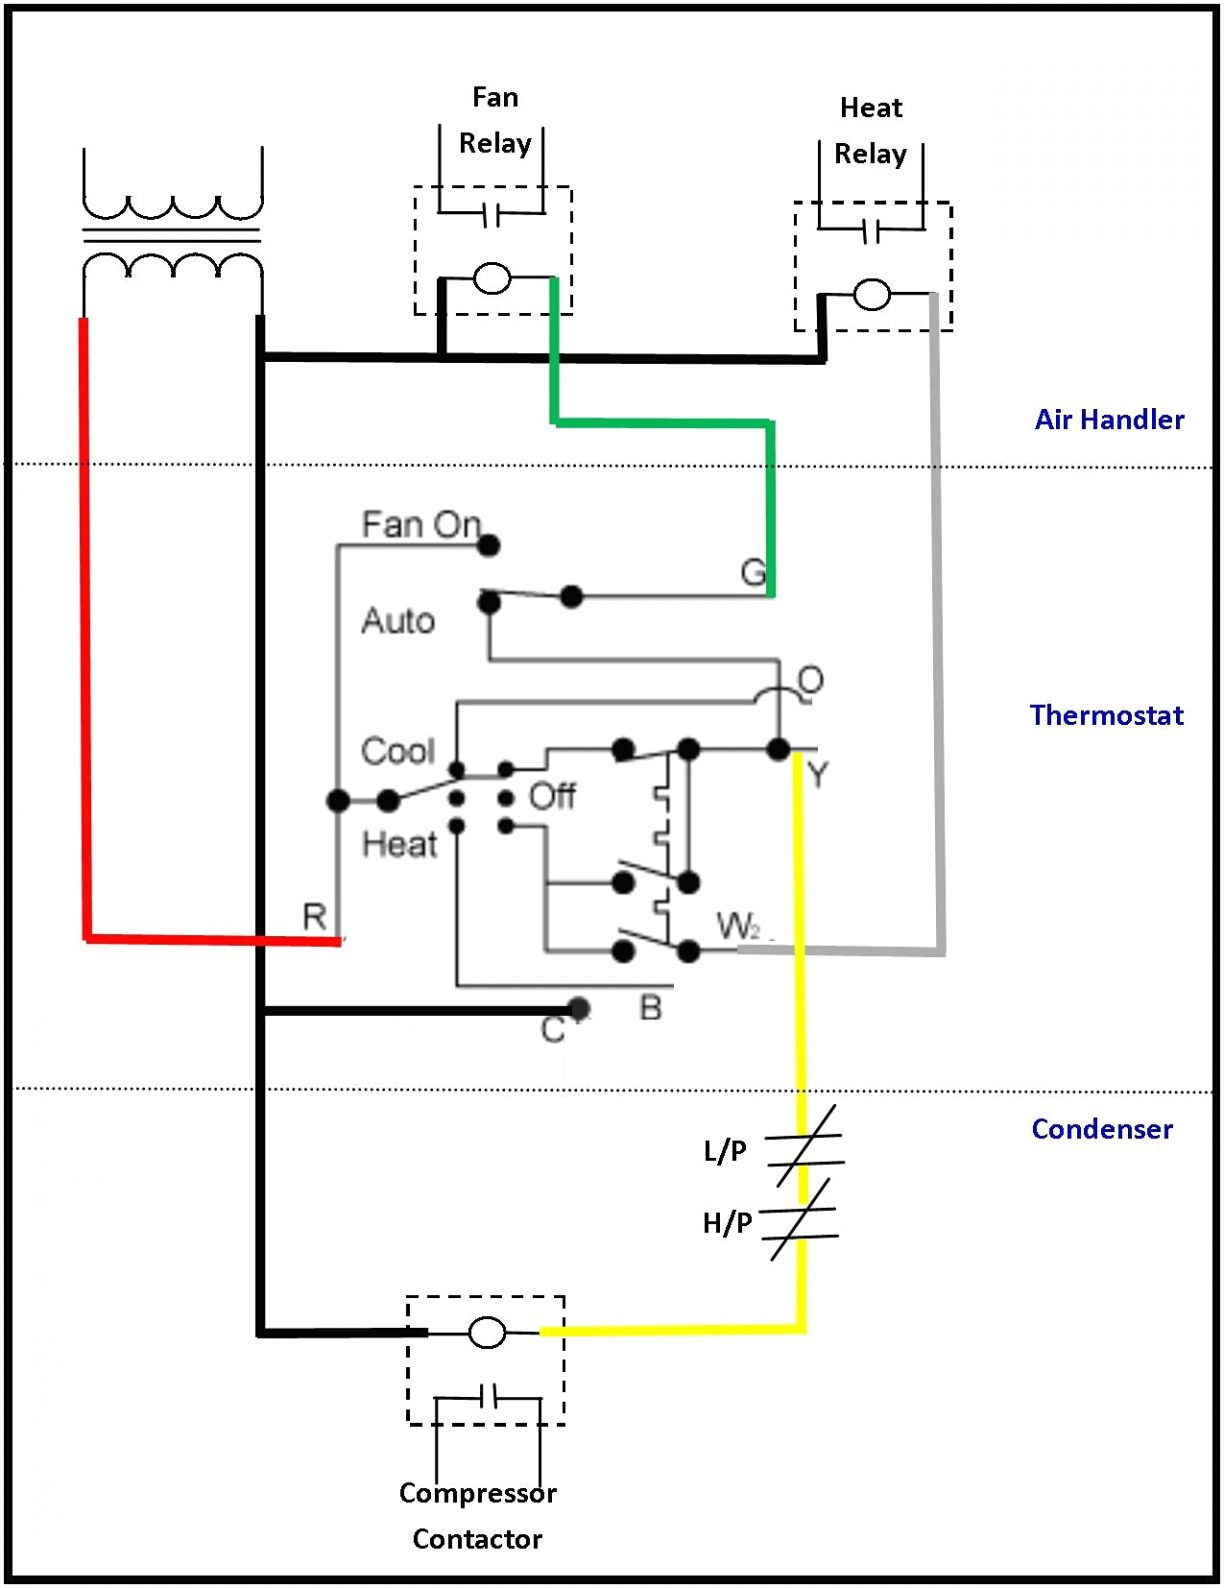 Diagram Wiring A Ac Thermostat Diagram Full Version Hd Quality Thermostat Diagram Inwallwiring Unrp Infos Fr